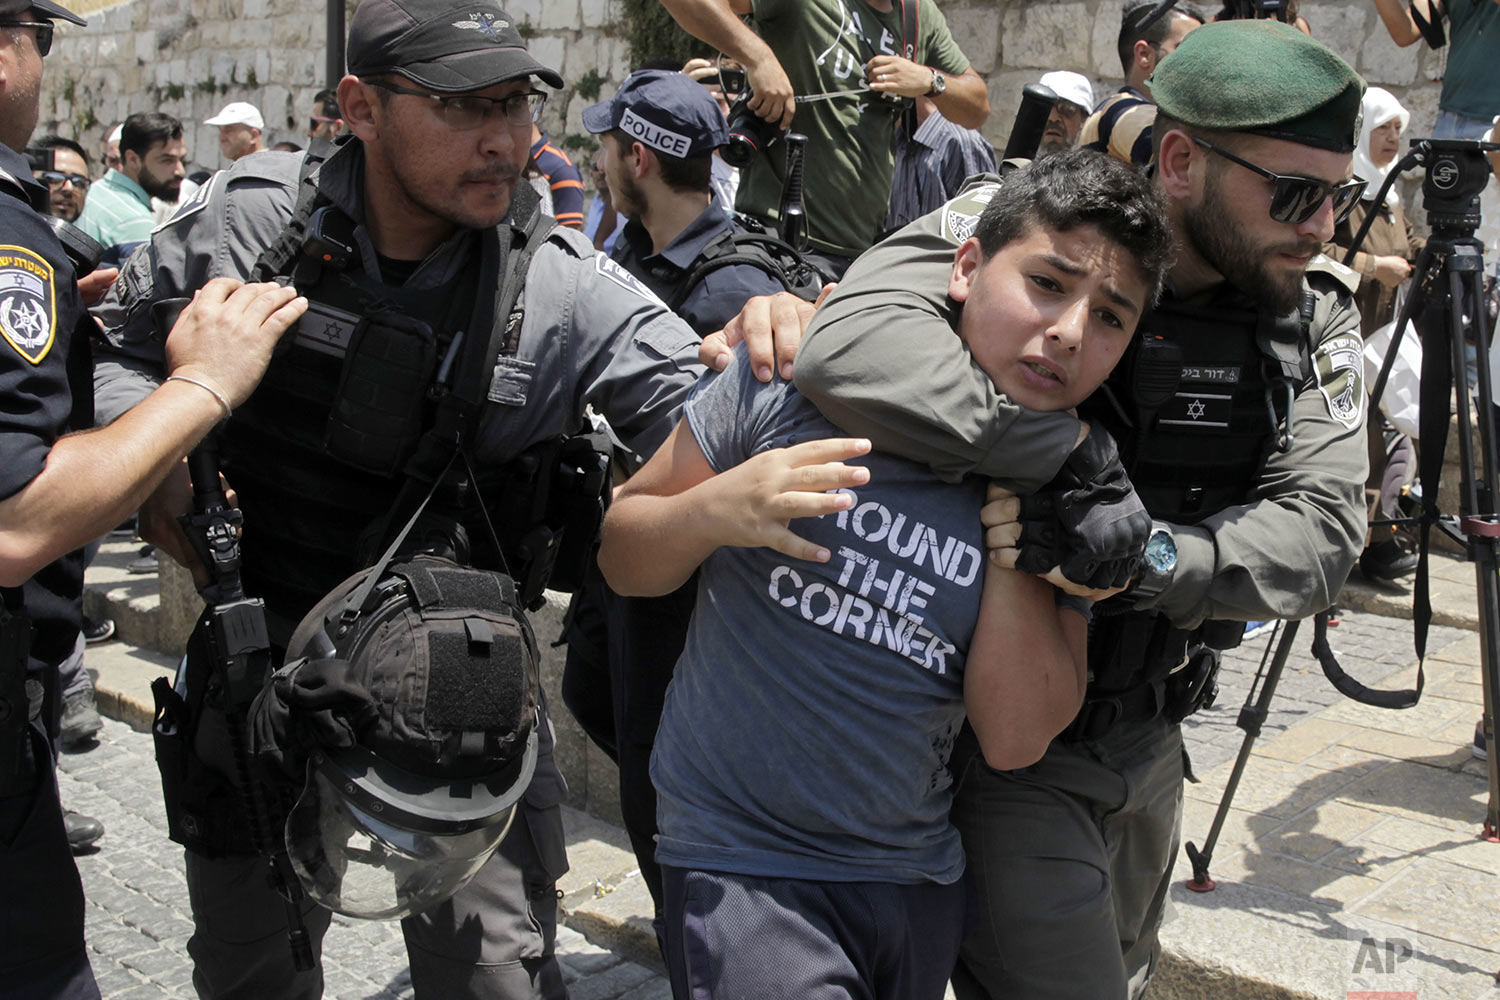 Israeli border police officers detain a Palestinian youth in Jerusalem's Old City, Monday, July 17, 2017.(AP Photo/Mahmoud Illean)